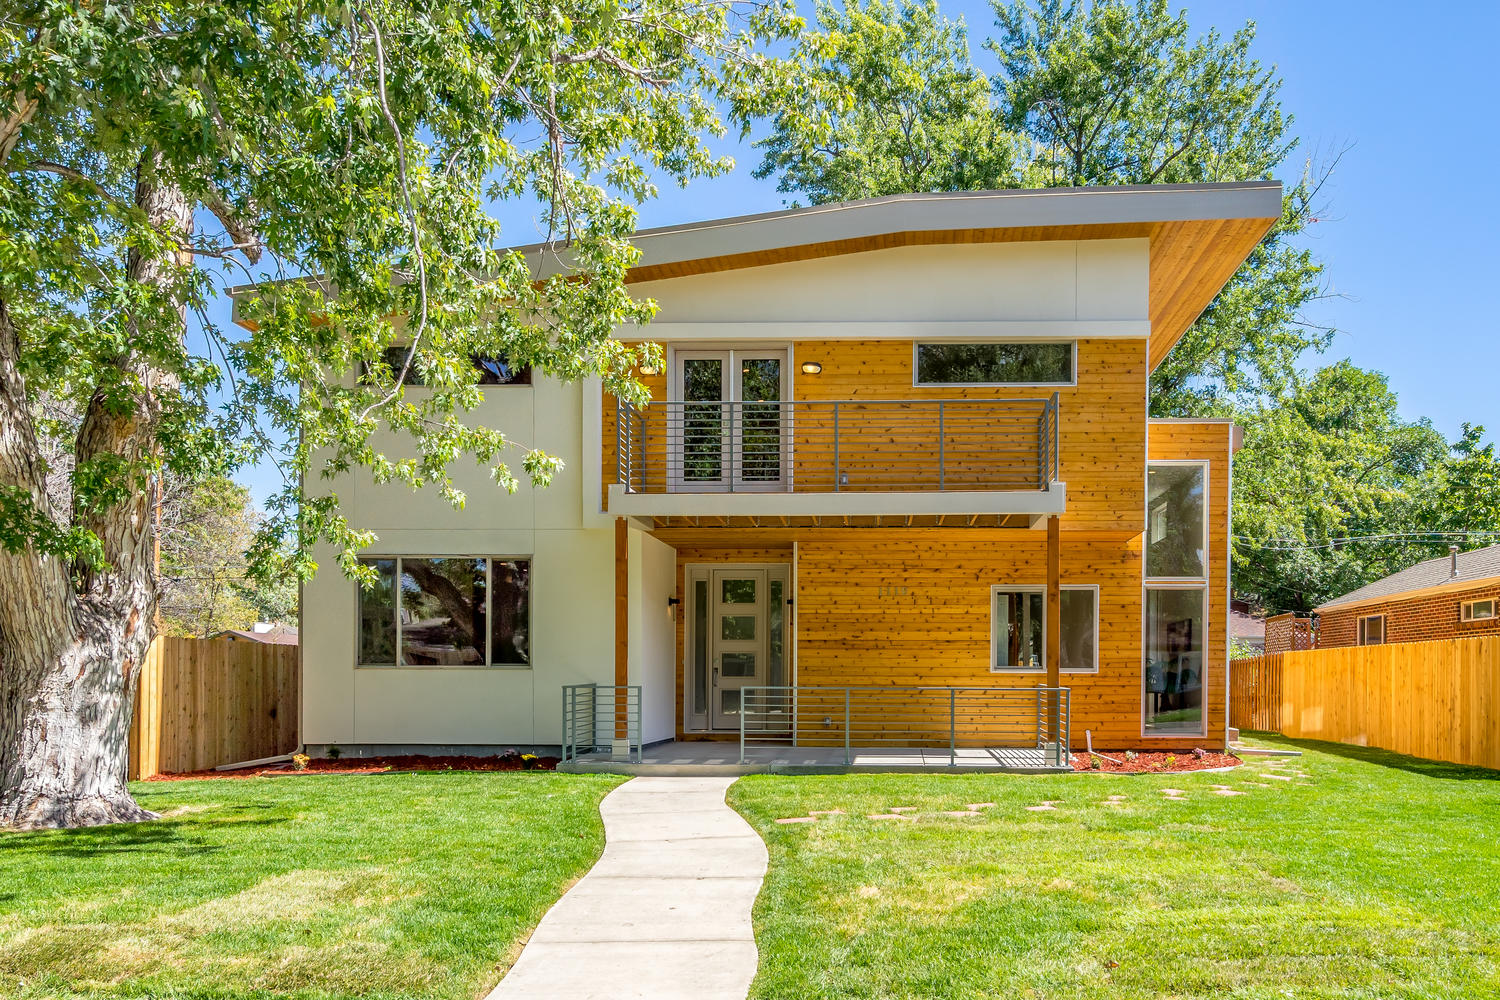 Single Family Home for Sale at Brand new home 2016 1110 Leyden St Montclair, Denver, Colorado, 80220 United States